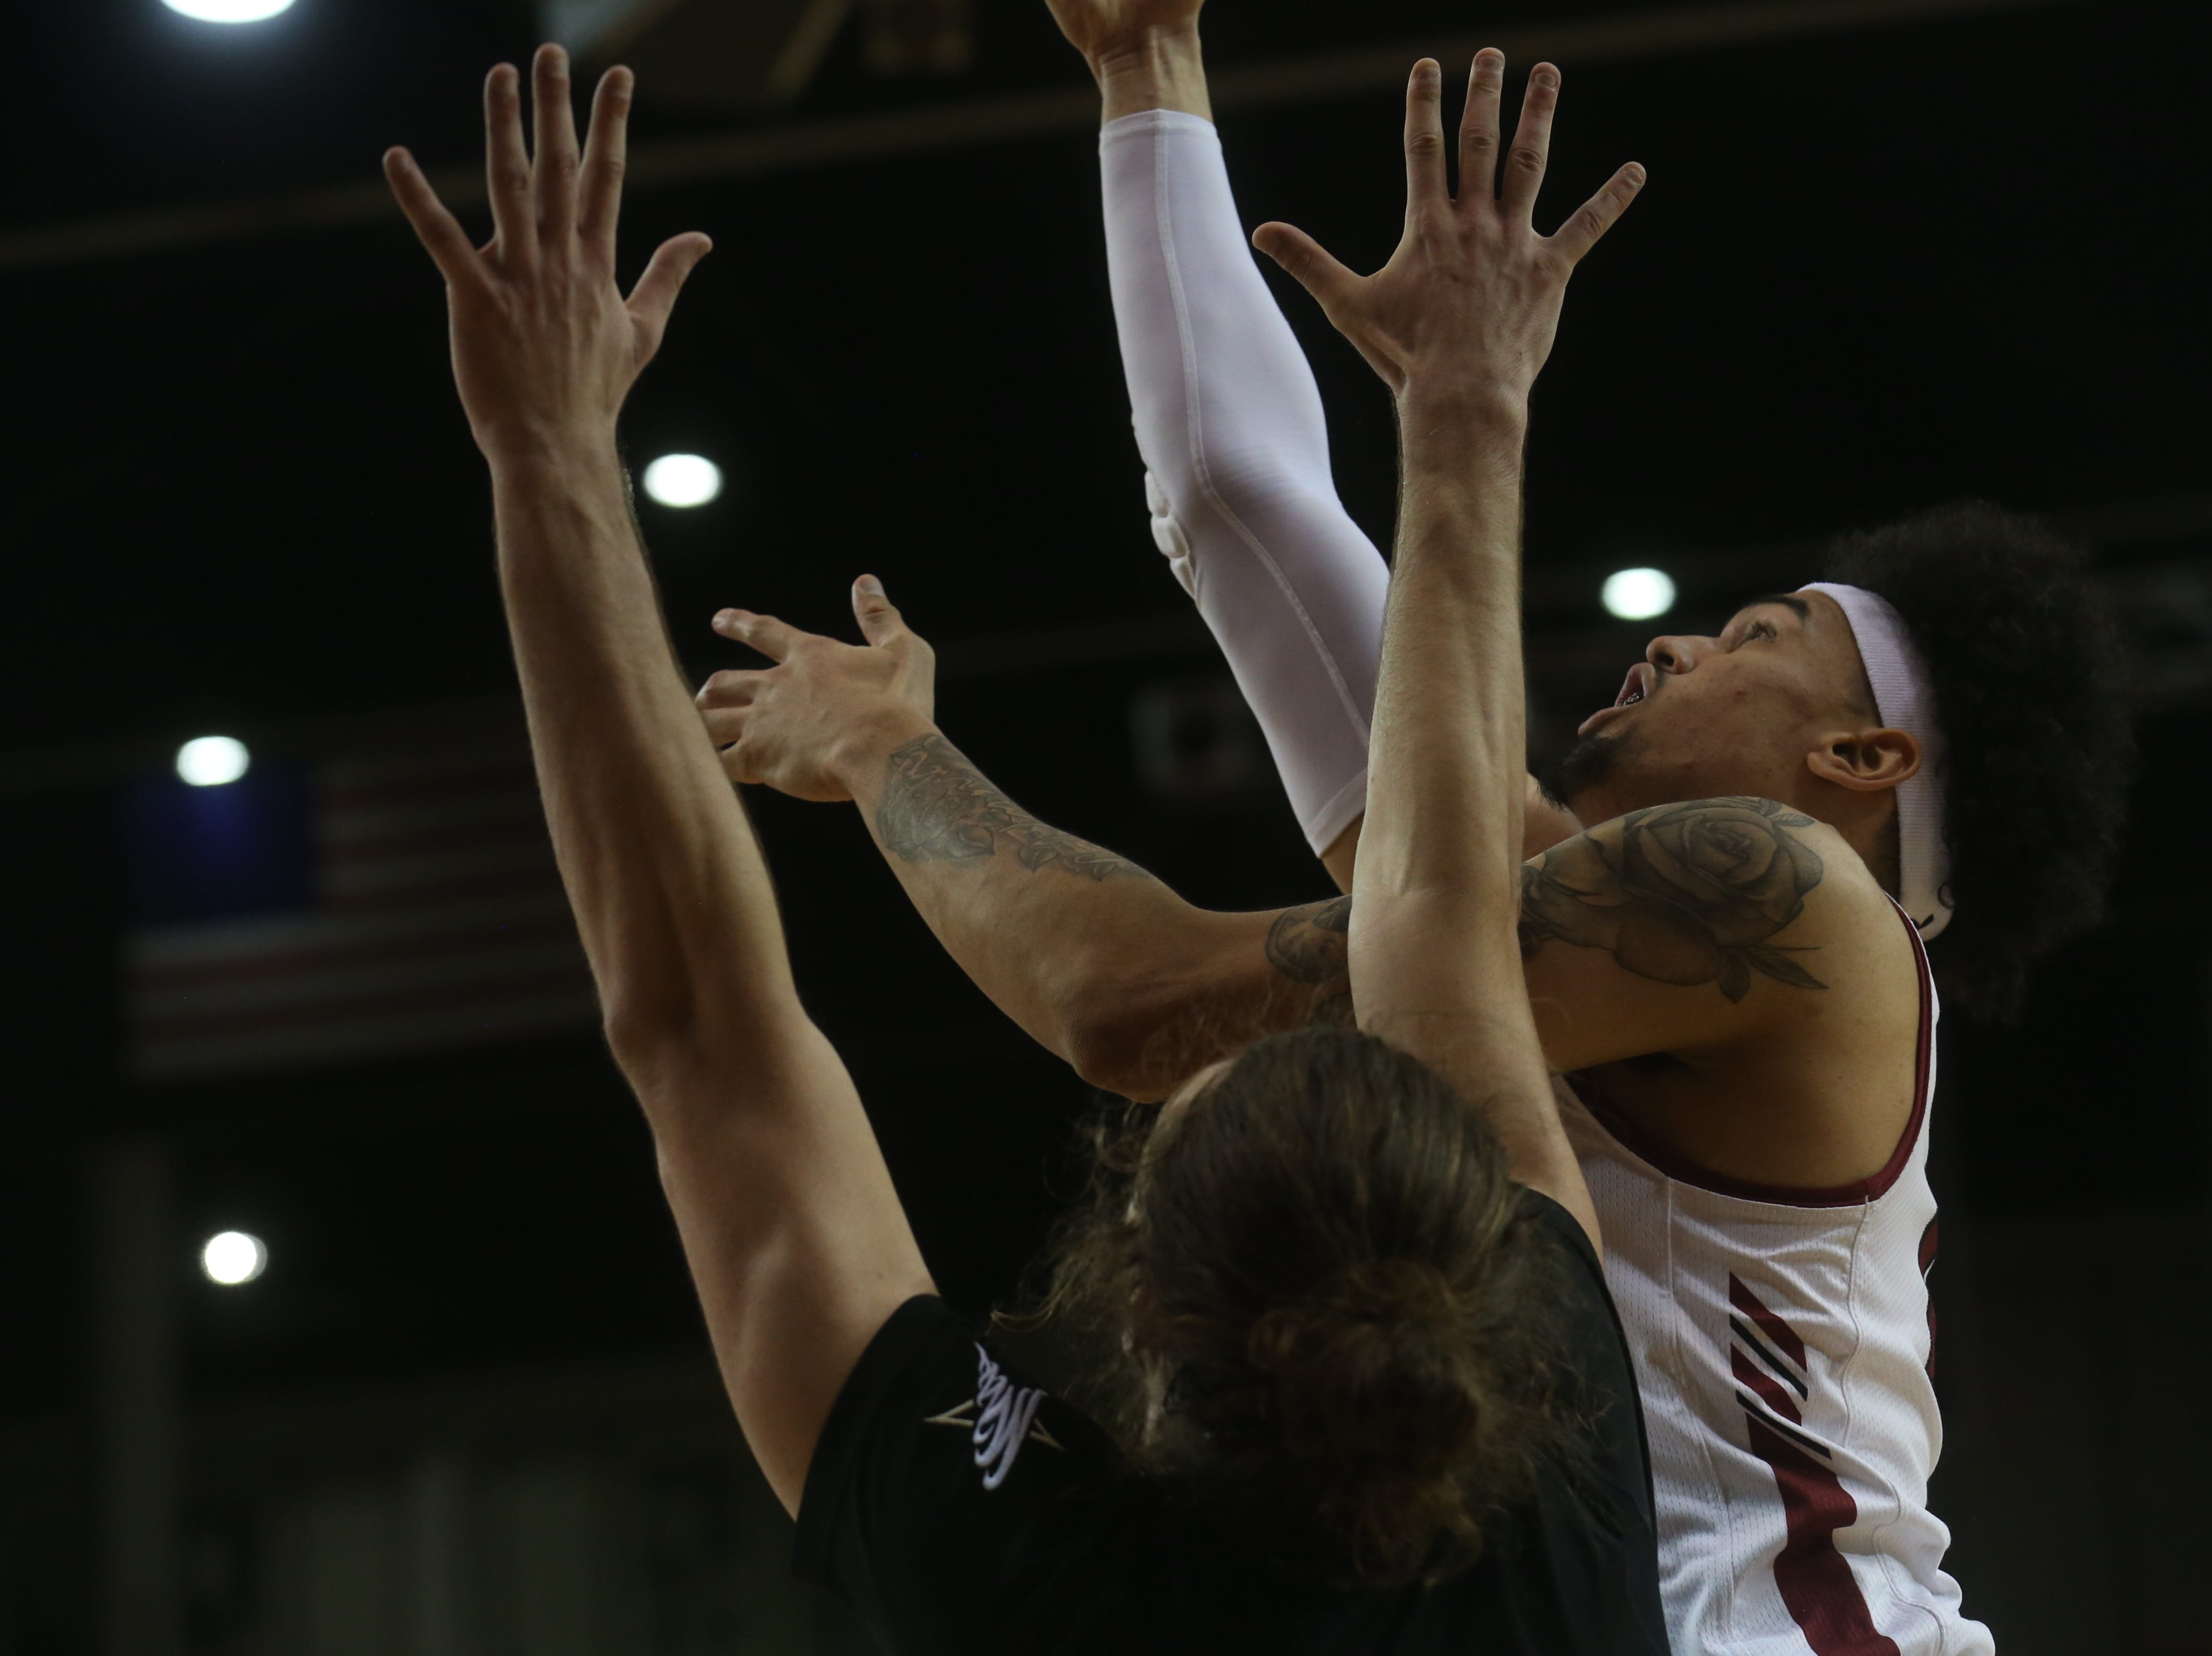 New Mexico State University's Eli Chuha powers his way to the basket before being fouled in the Aggies' non-conference game against Texas A&M International University Feb. 19 at the Pan American Center.